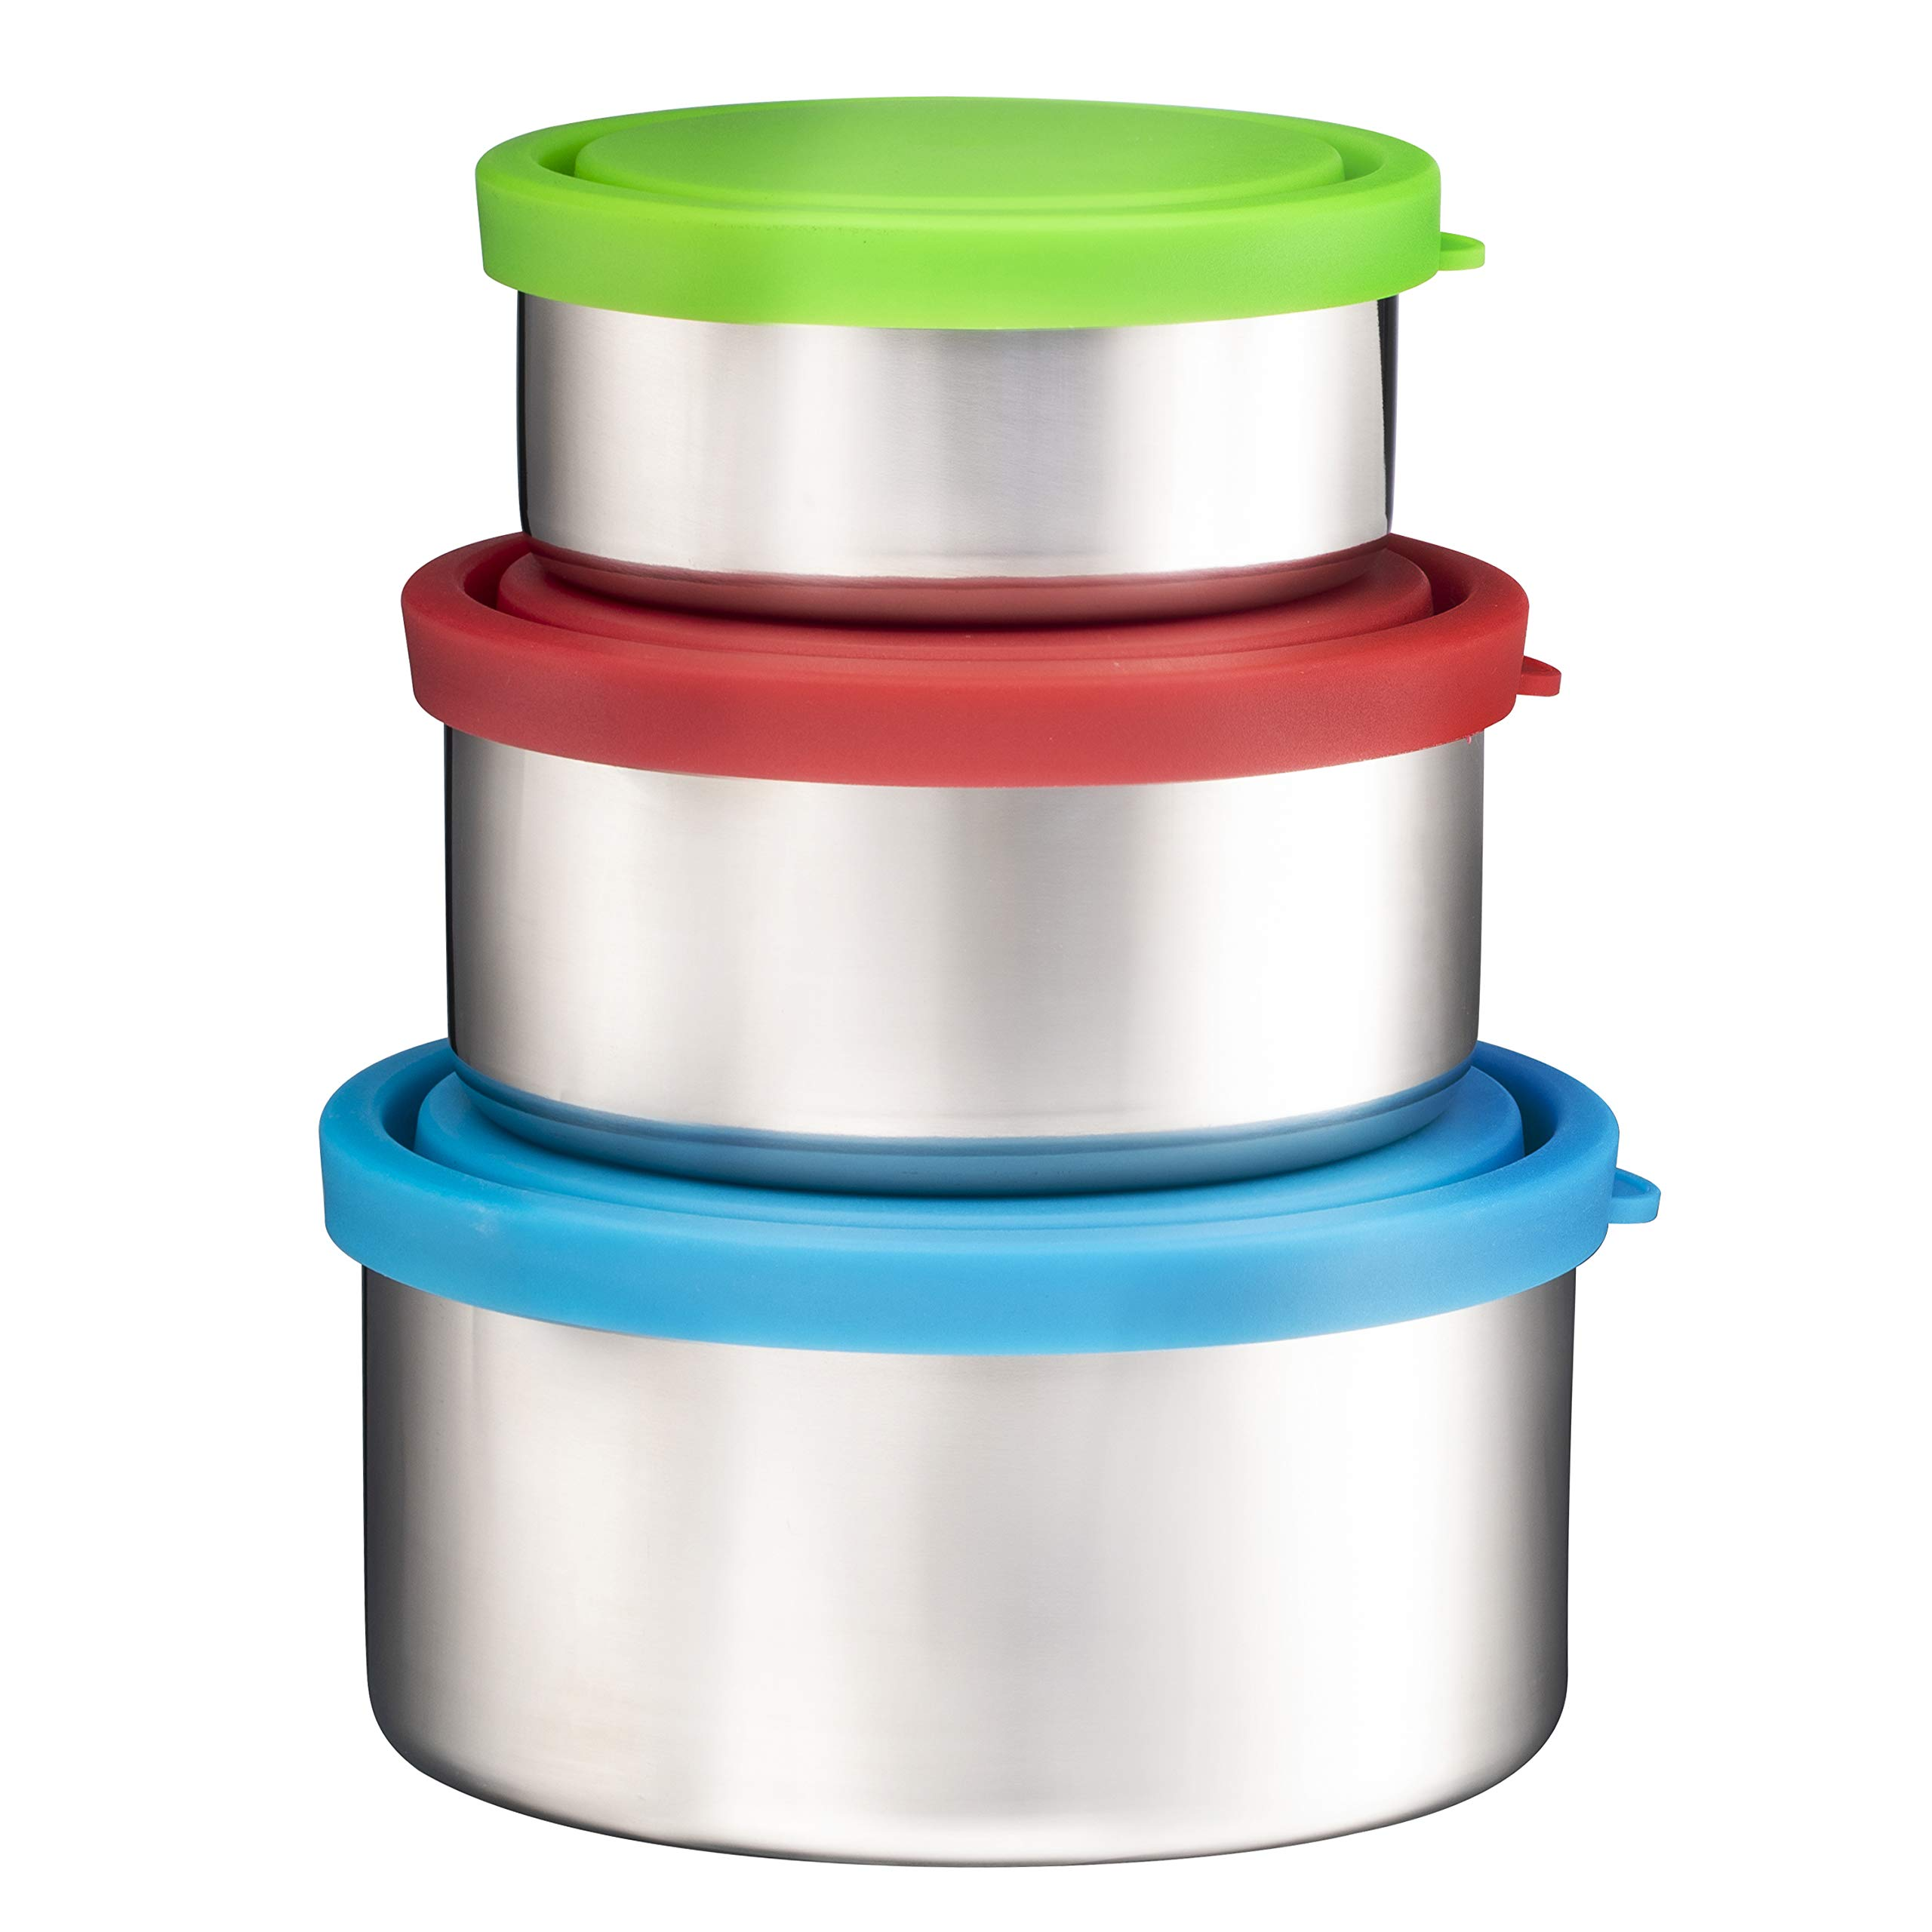 Bruntmor Trio Nesting 18/8 Stainless Steel Food Containers with Leak-Proof Lids, Set of 3 by Bruntmor